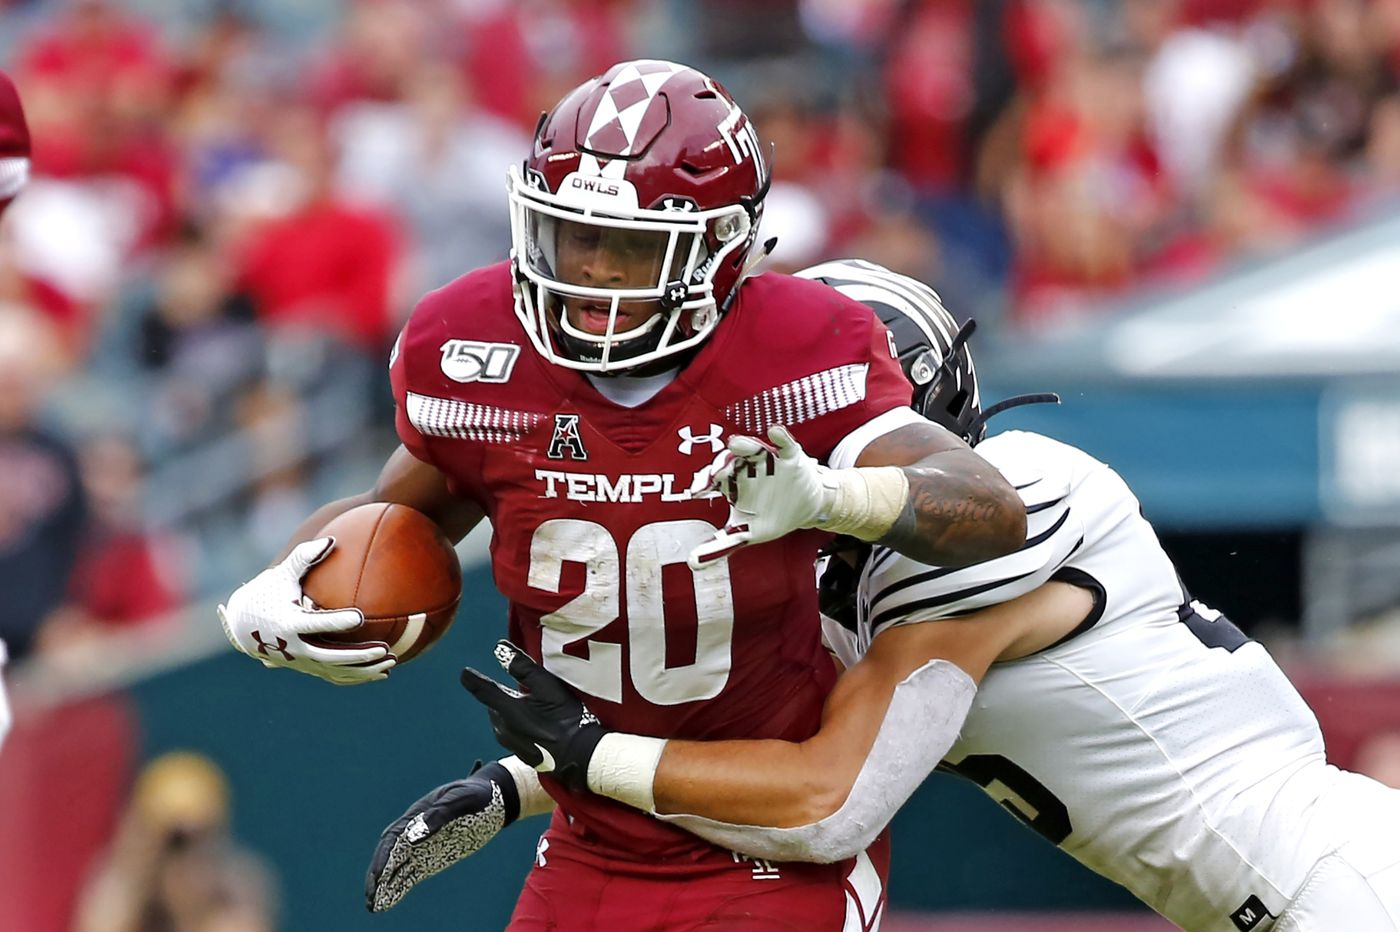 Source: Military Bowl the favorite for Temple